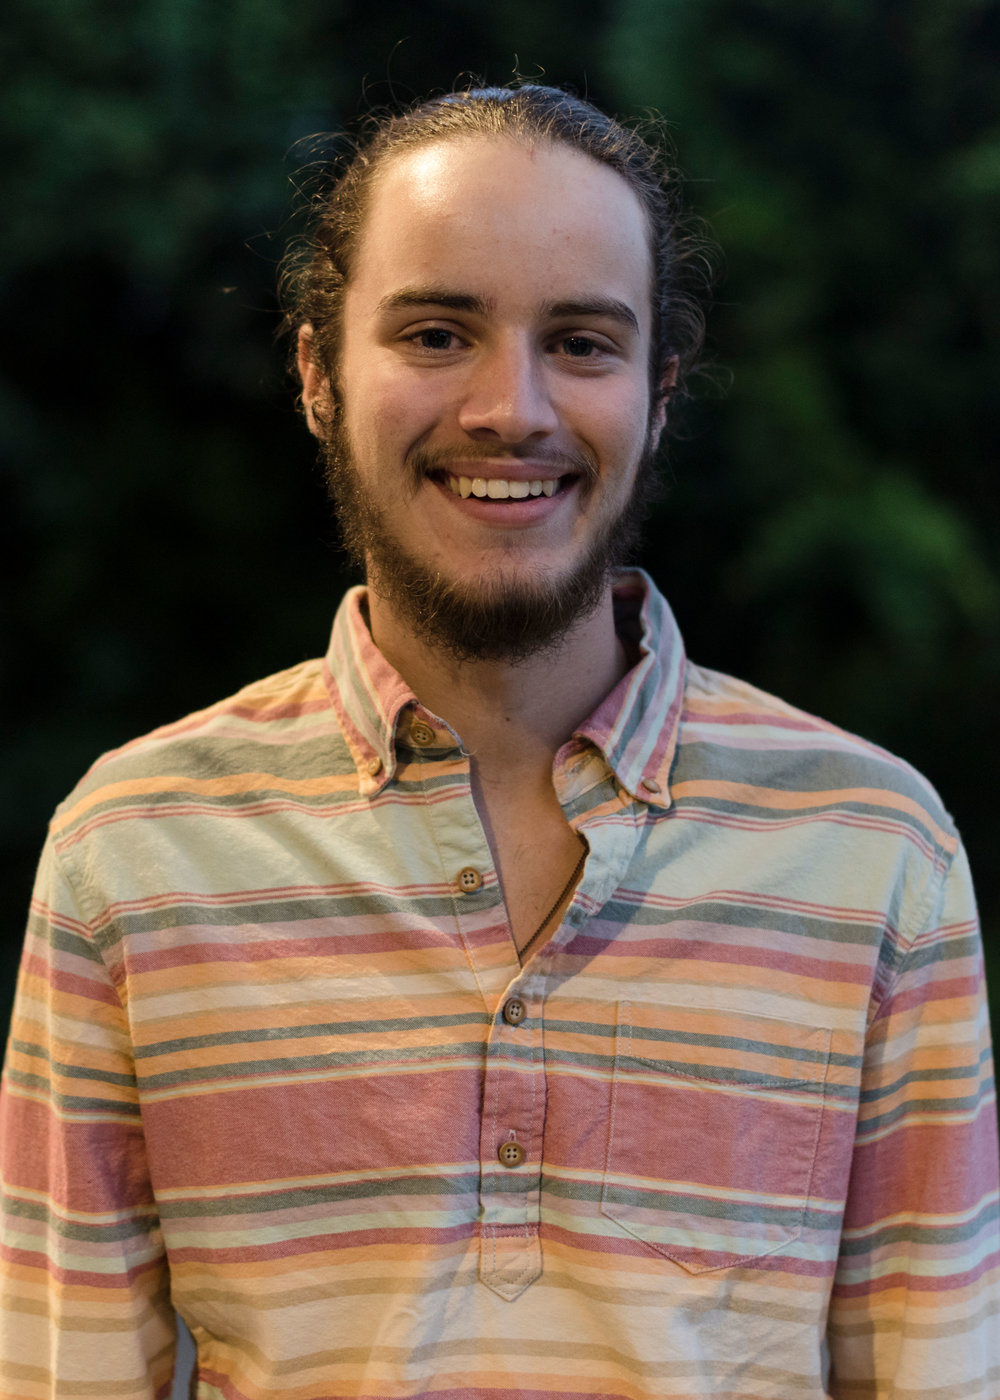 Zack Spencer grew up in Columbia, SC and is currently a junior at USC where he is the Executive Producer of 1080C, USC's short film organization. His goal is to become a cinematographer and writer, and to share his perspectives with the world through narrative storytelling.